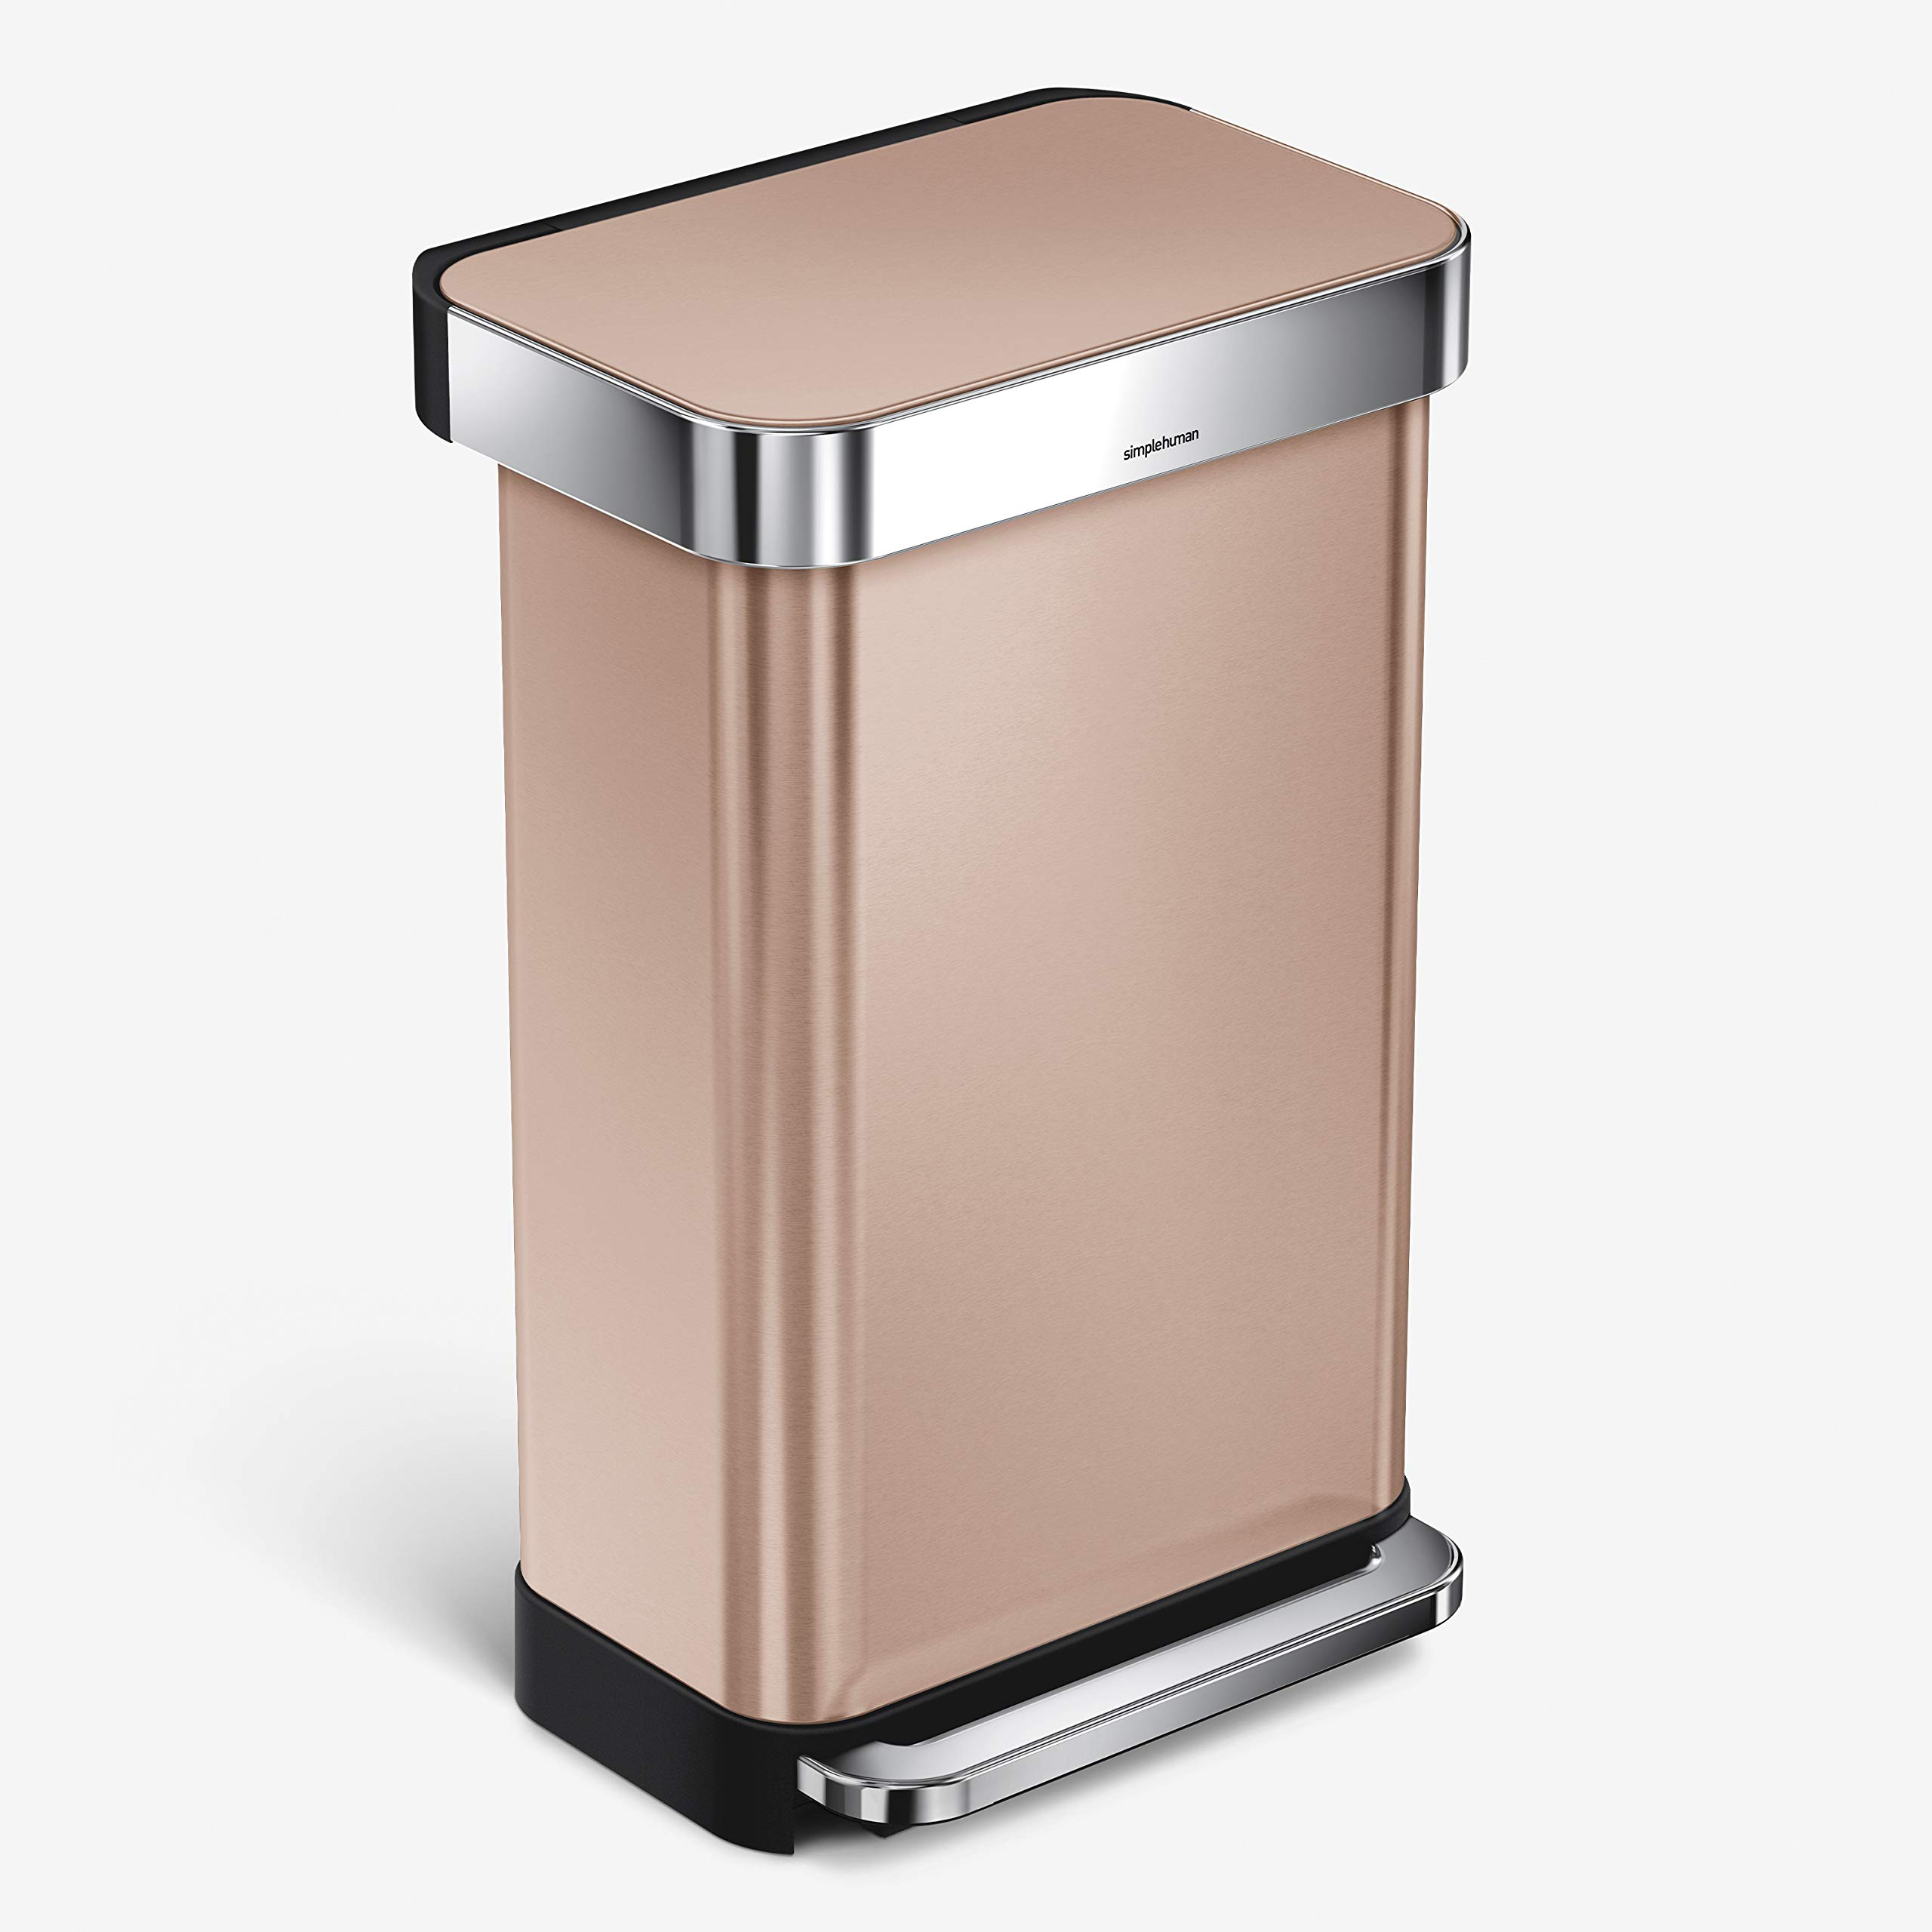 simplehuman 45 Liter Rectangular Hands-Free Kitchen Step Trash Can with Soft-Close Lid, Rose Gold Stainless Steel